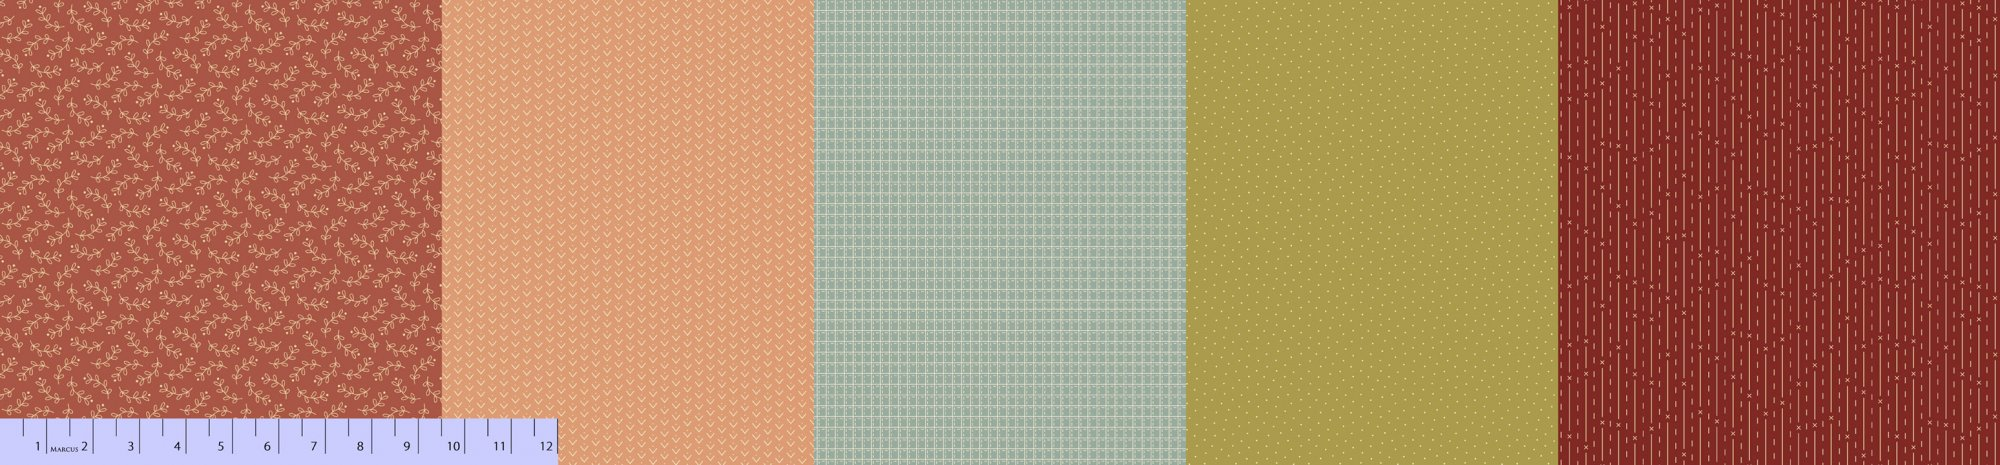 Sew Merry & Bright - Plumcute Pieces - Tonal Stripes